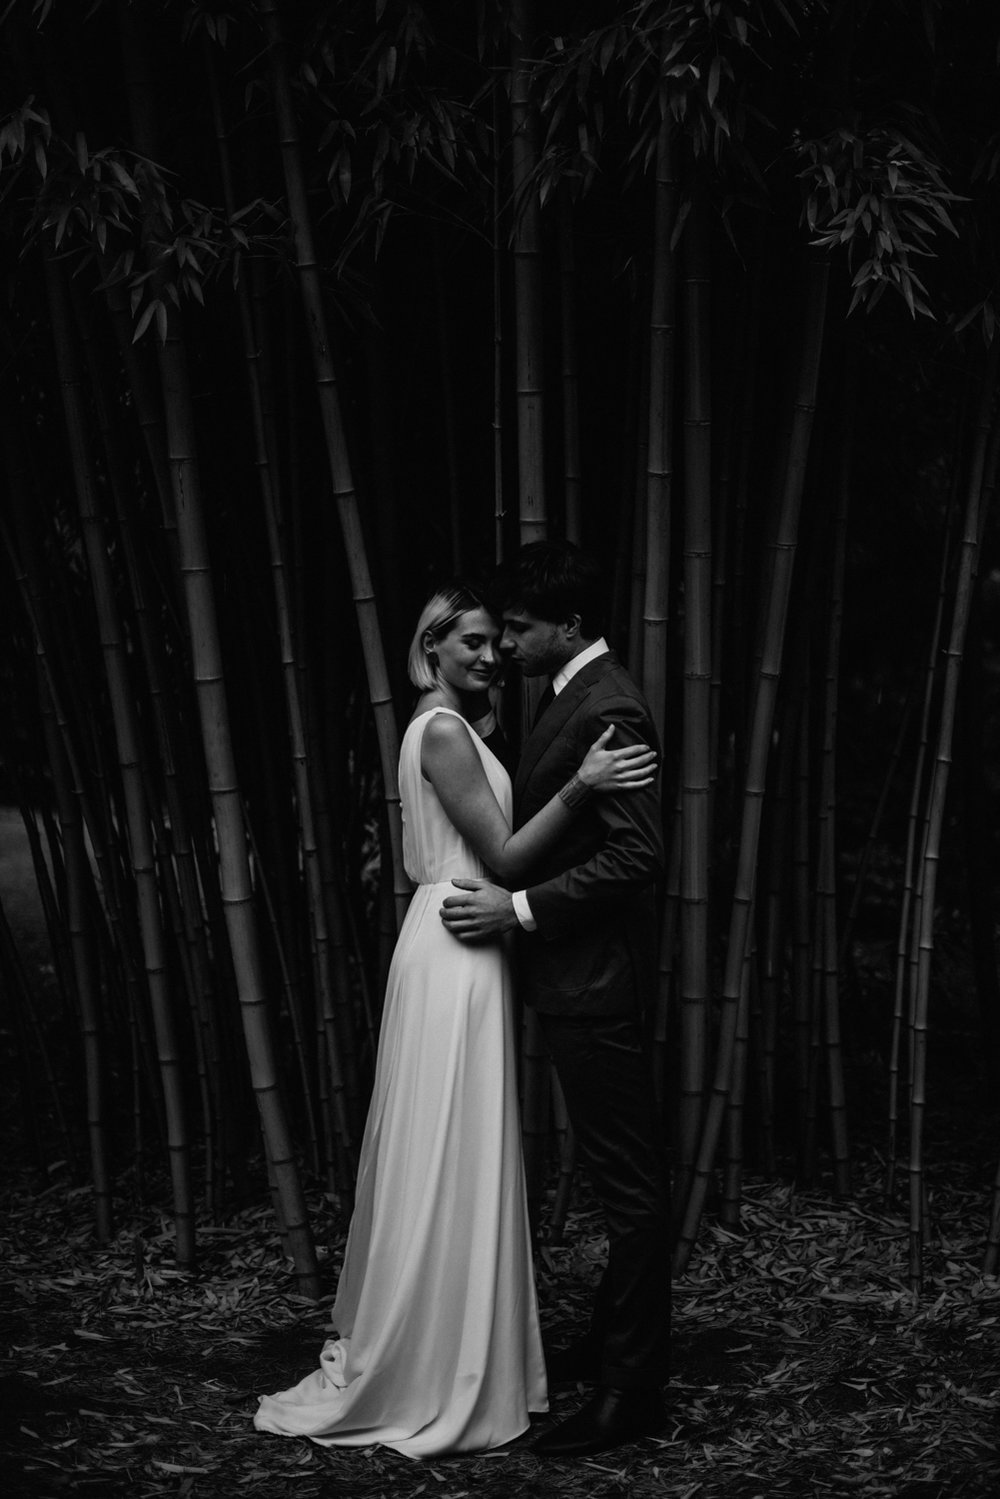 E + F inspiration vegetal tropical minimaliste espace nobuyoshi |  mariage reportage alternatif moody intime vintage naturel boho boheme |  PHOTOGRAPHE mariage PARIS france destination  | FREYIA photography-58.jpg